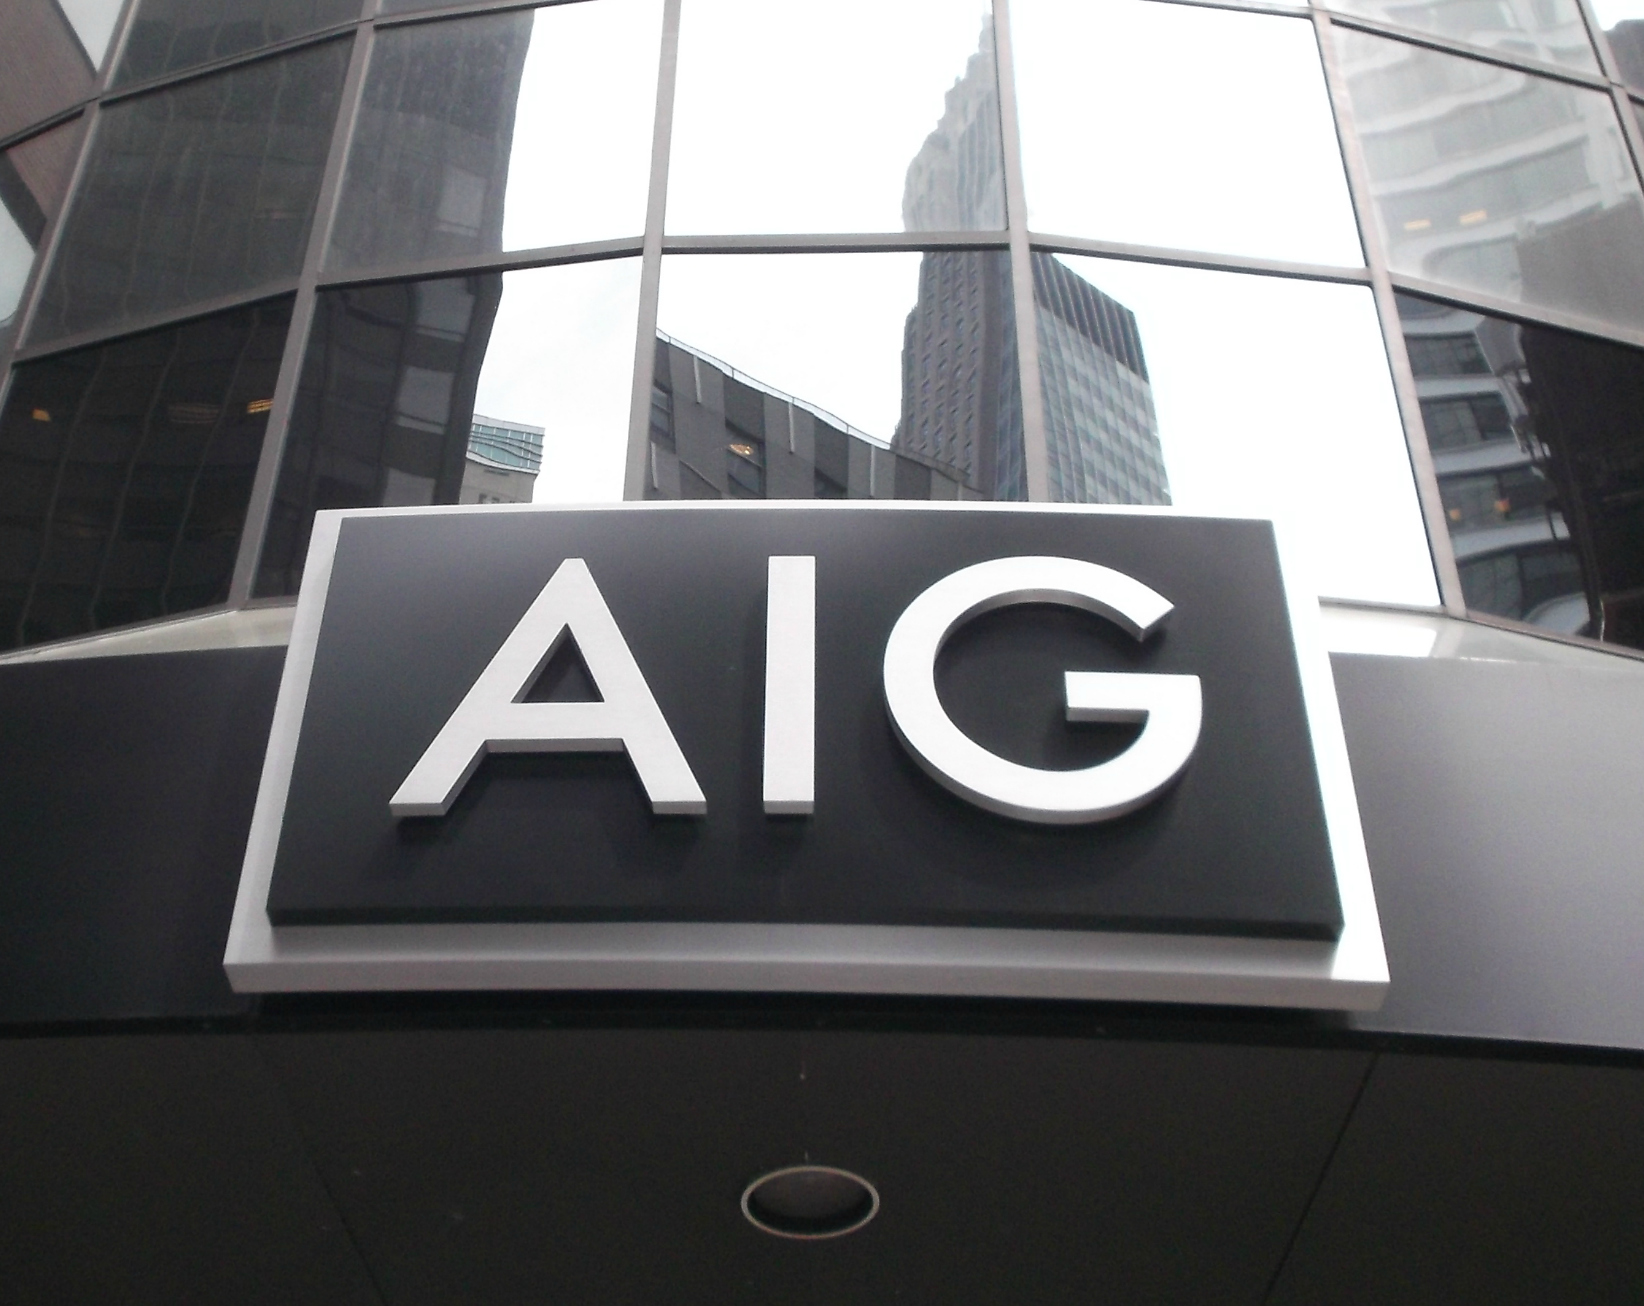 Aig Quote Aig Reported To Have Held Talks To Acquire Voya